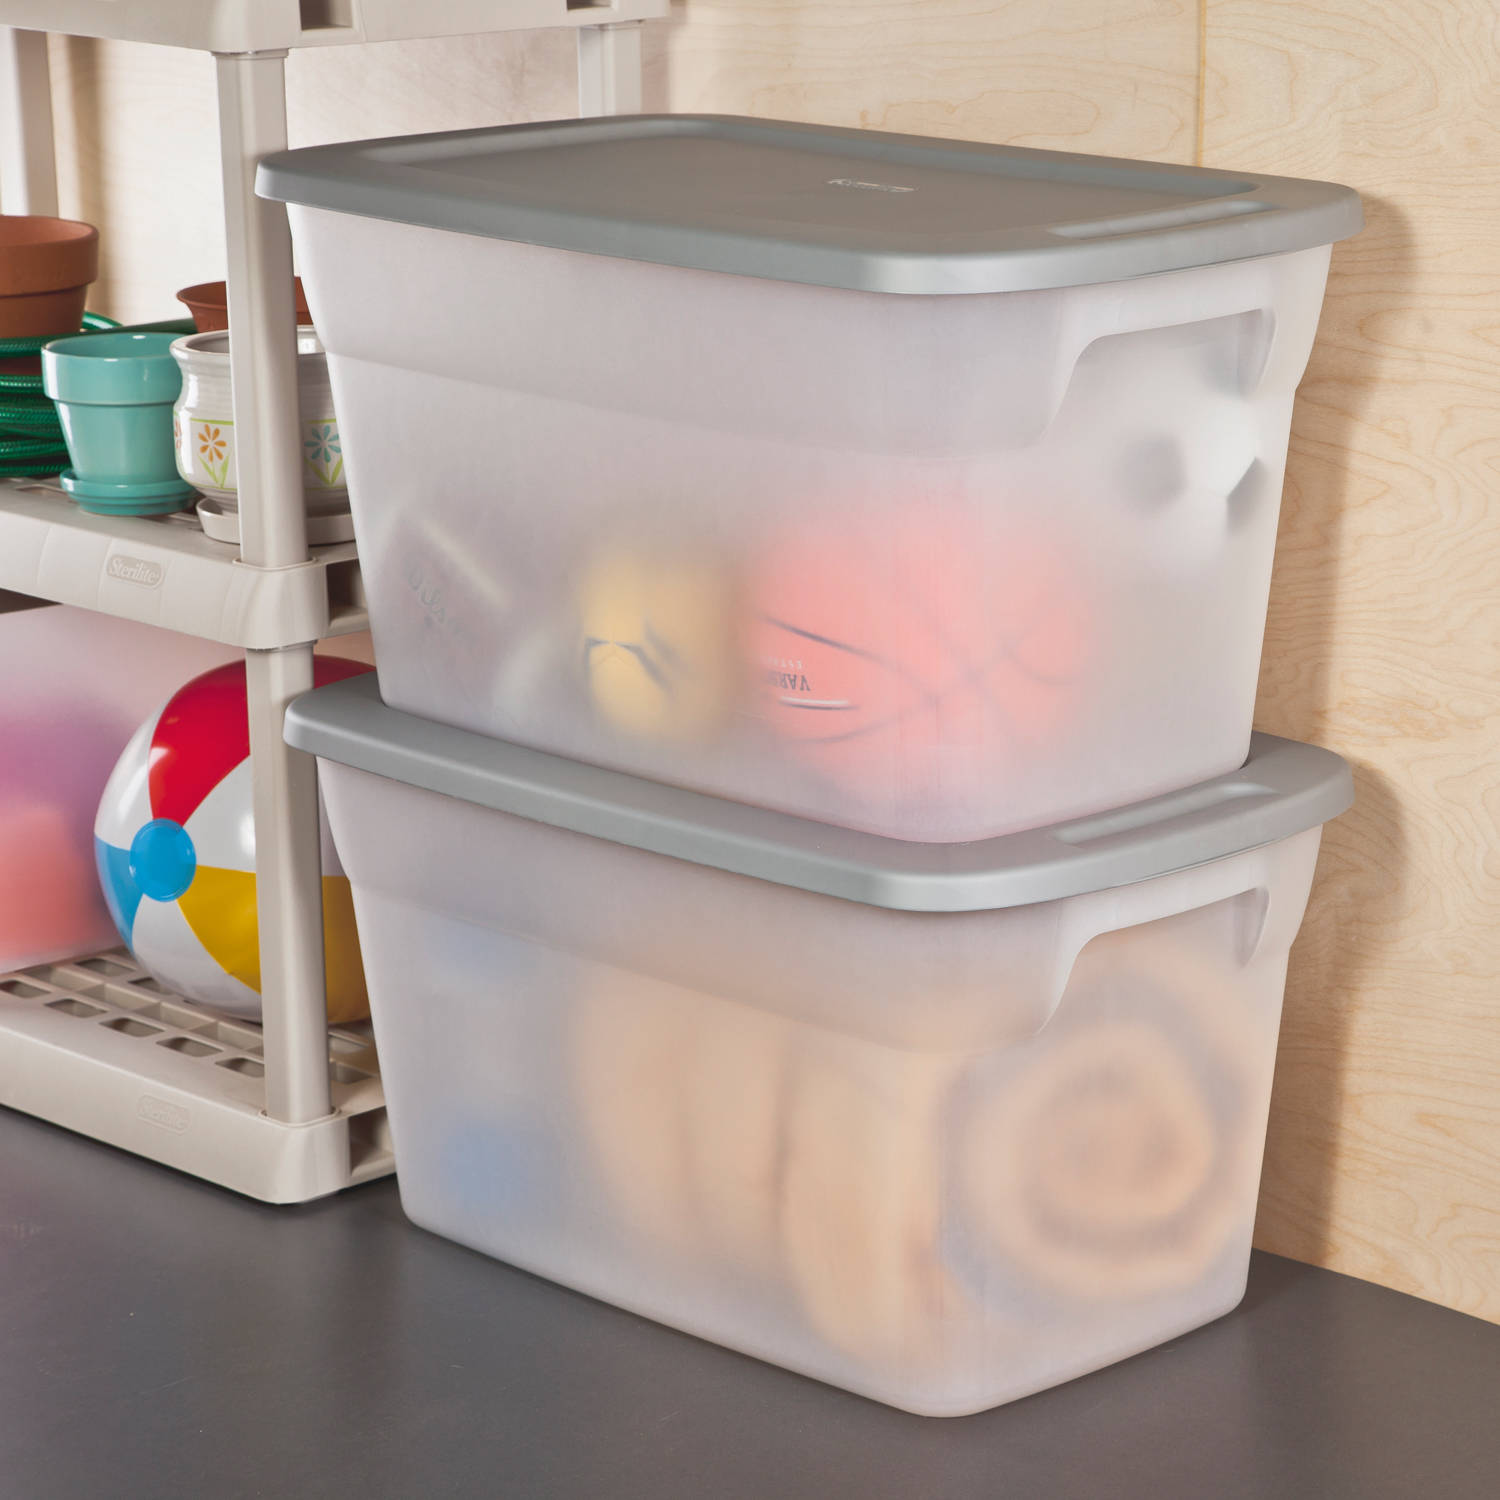 Delightful 114 L Tote Box, Clear/ Titanium, Available In Case Of 6 Or Single Unit    Walmart.com